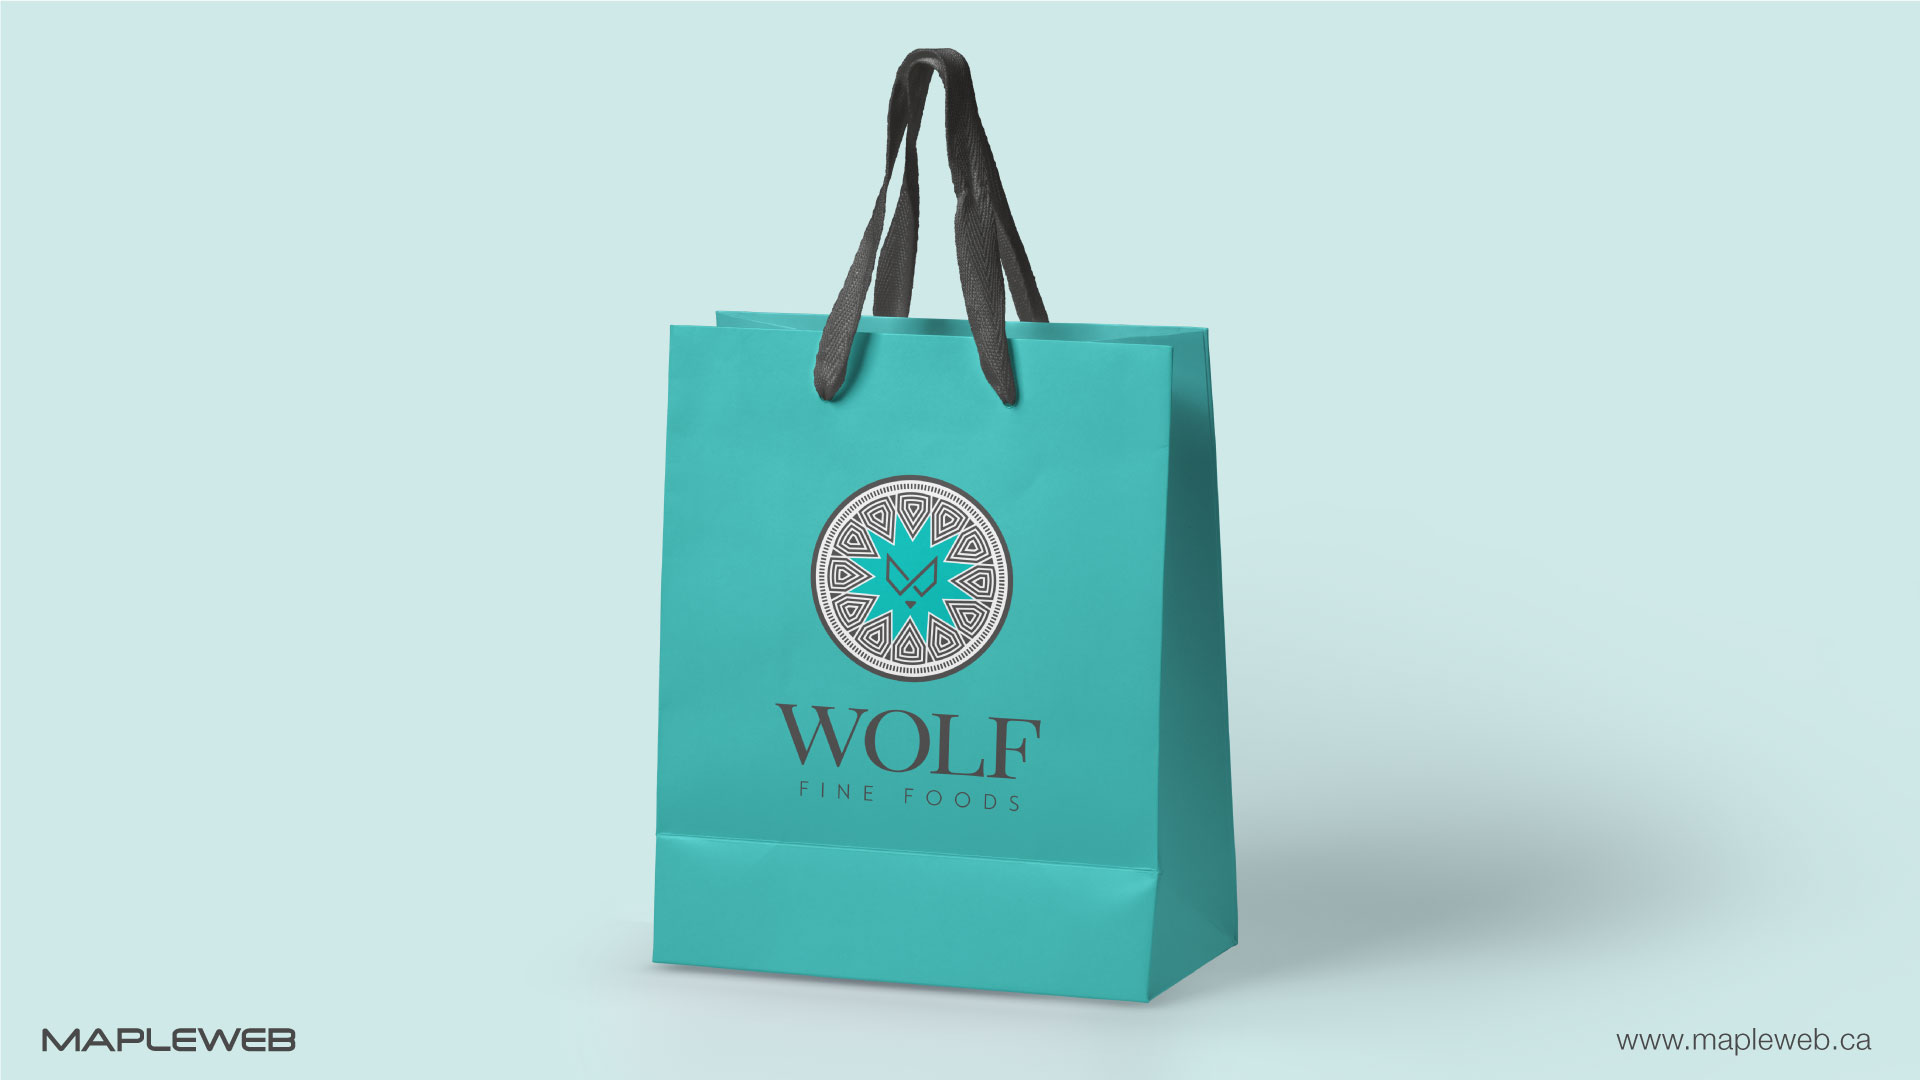 wolf-fine-foods-brand-logo-design-by-mapleweb-vancouver-canada-bag-mock